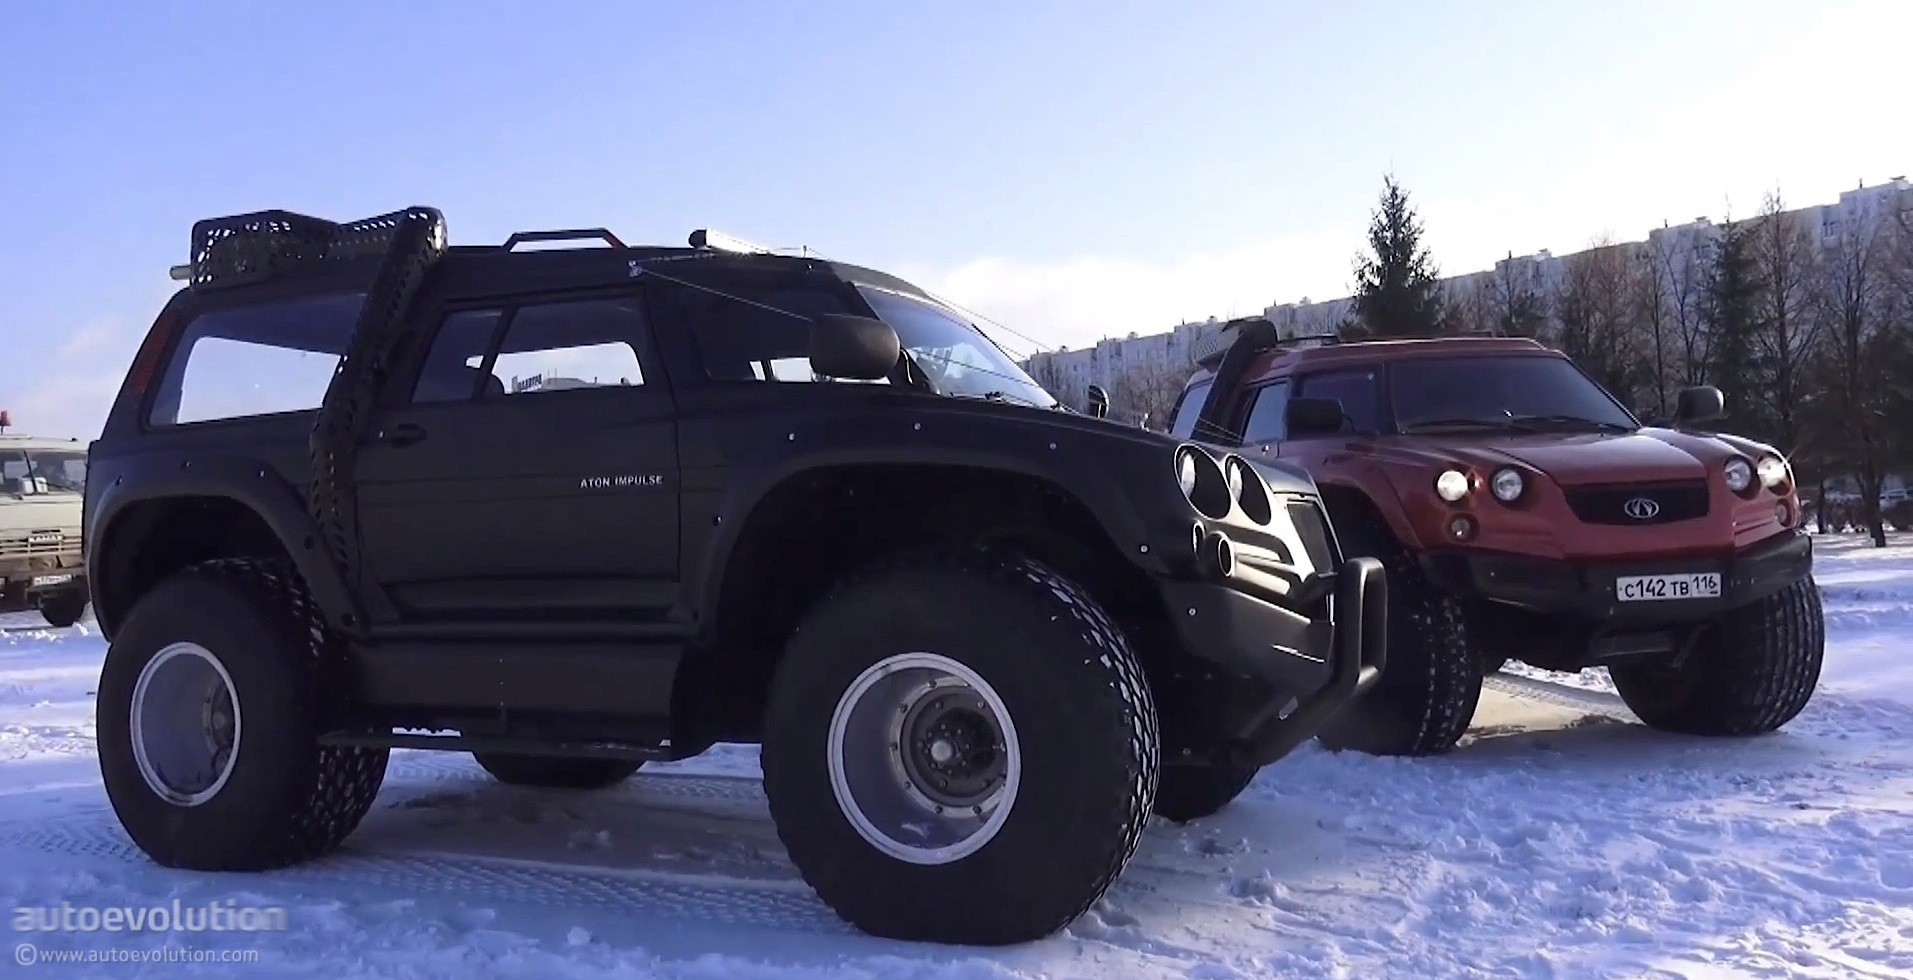 The Viking 29031 Is An Amphibious Monster Truck From Russia Video Autoevolution